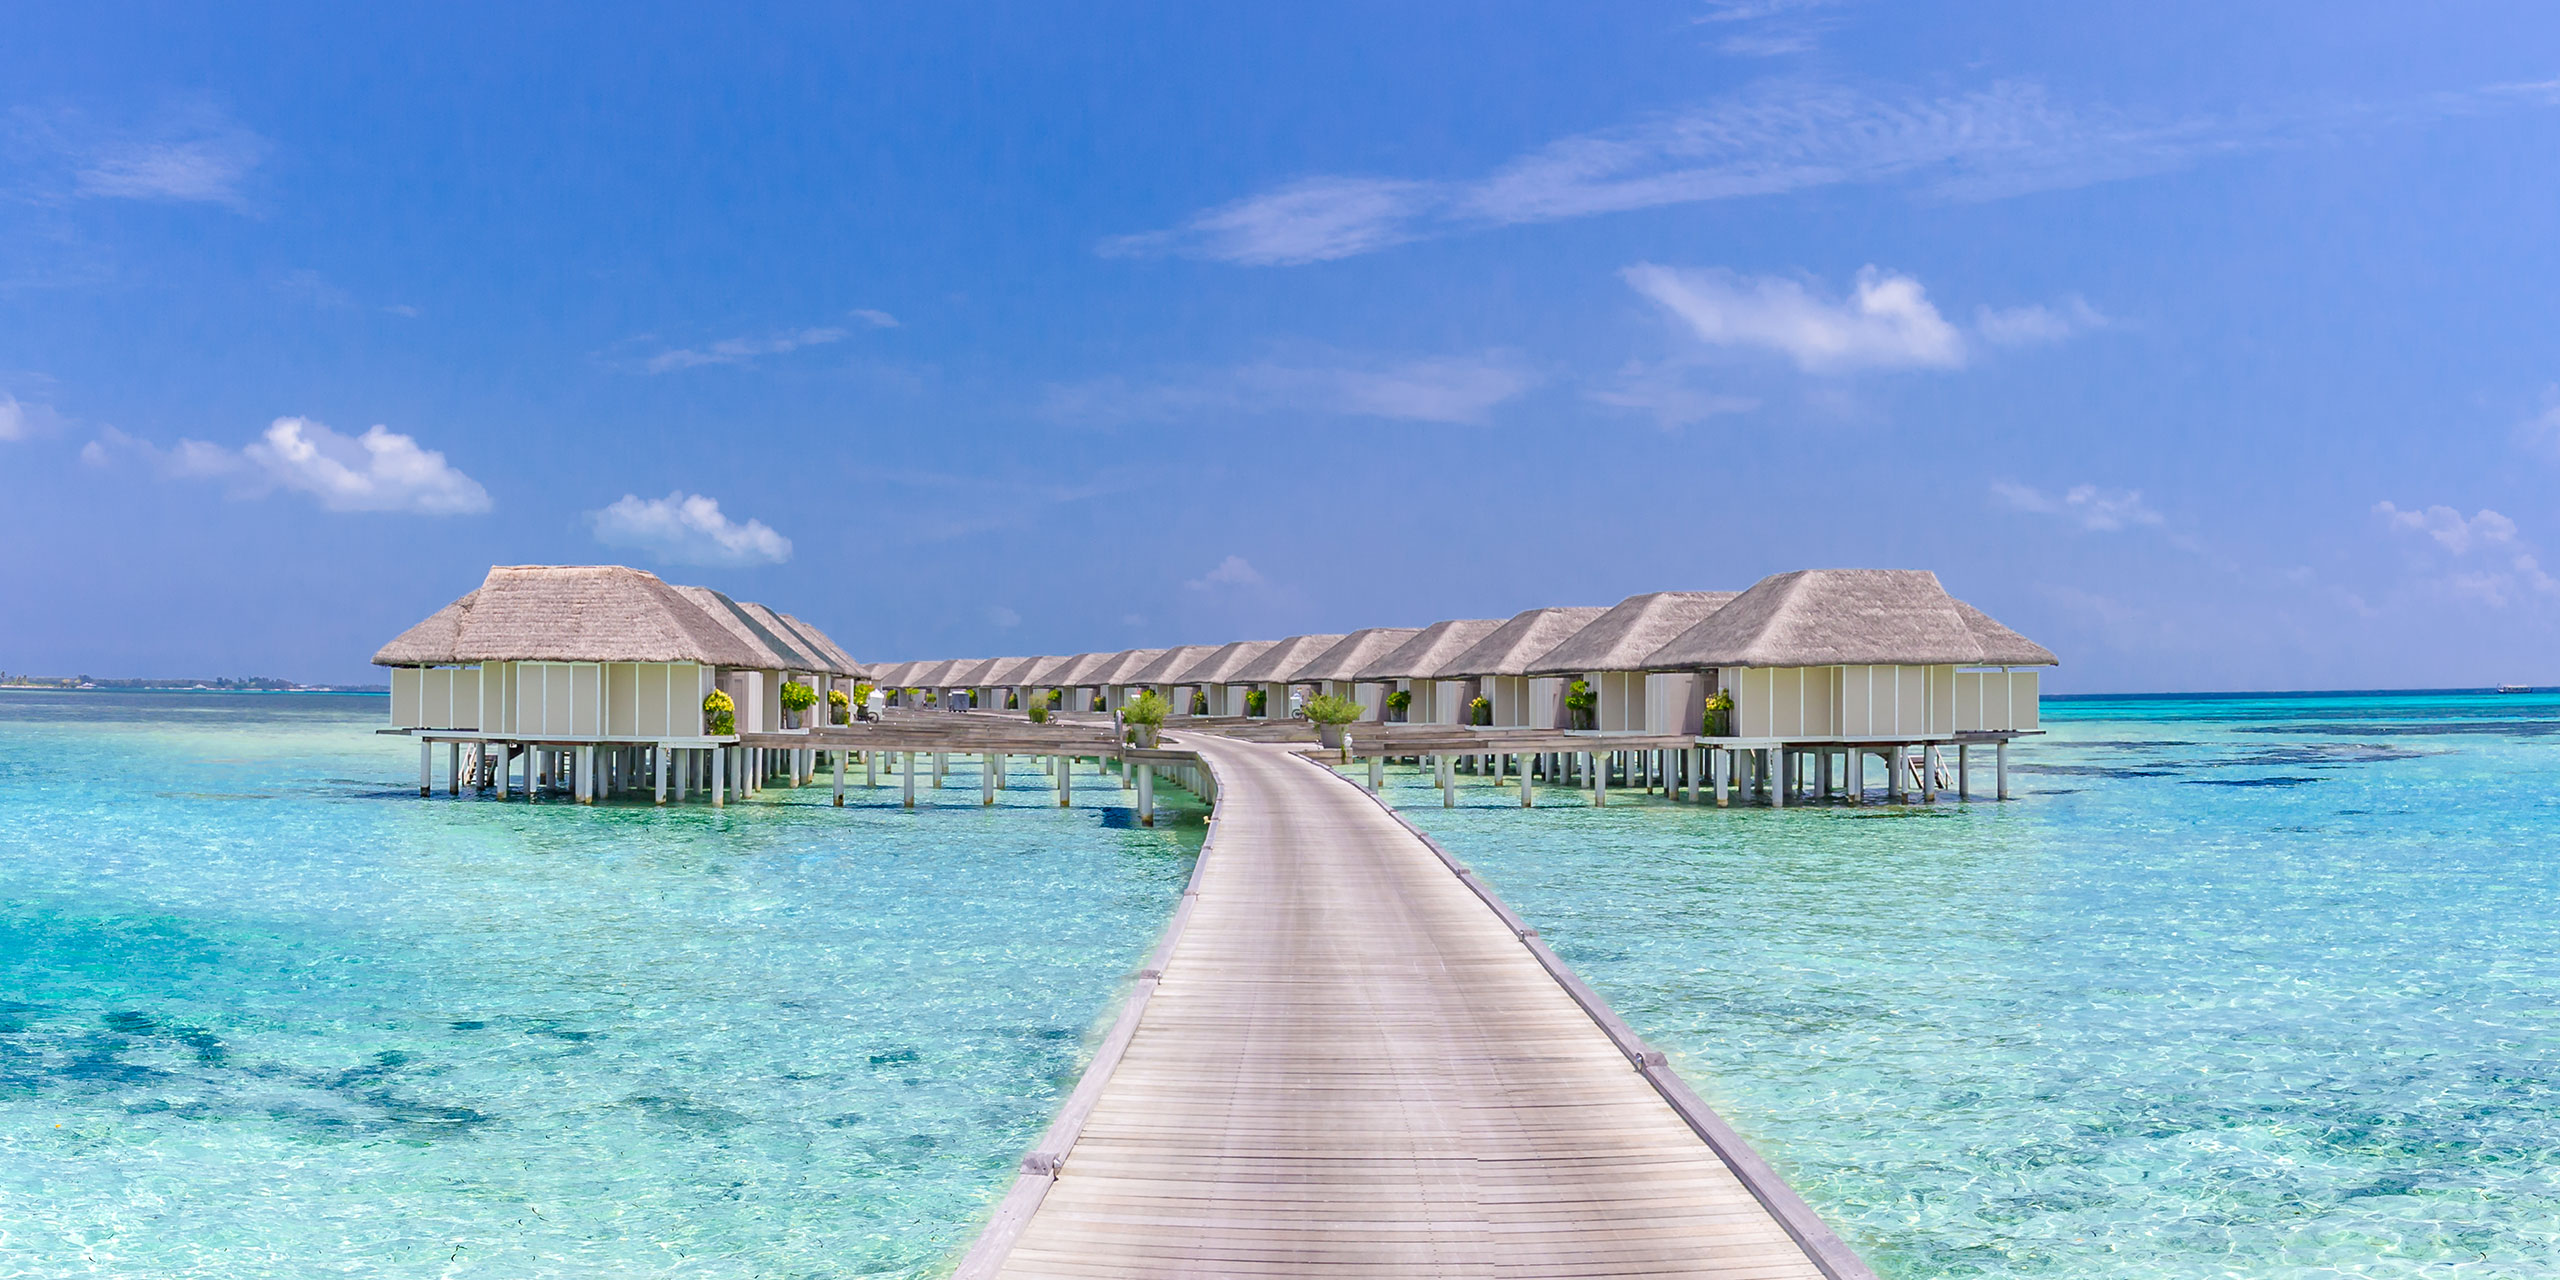 Overwater Bungalows; Courtesy of icemanphotos/Shutterstock.com